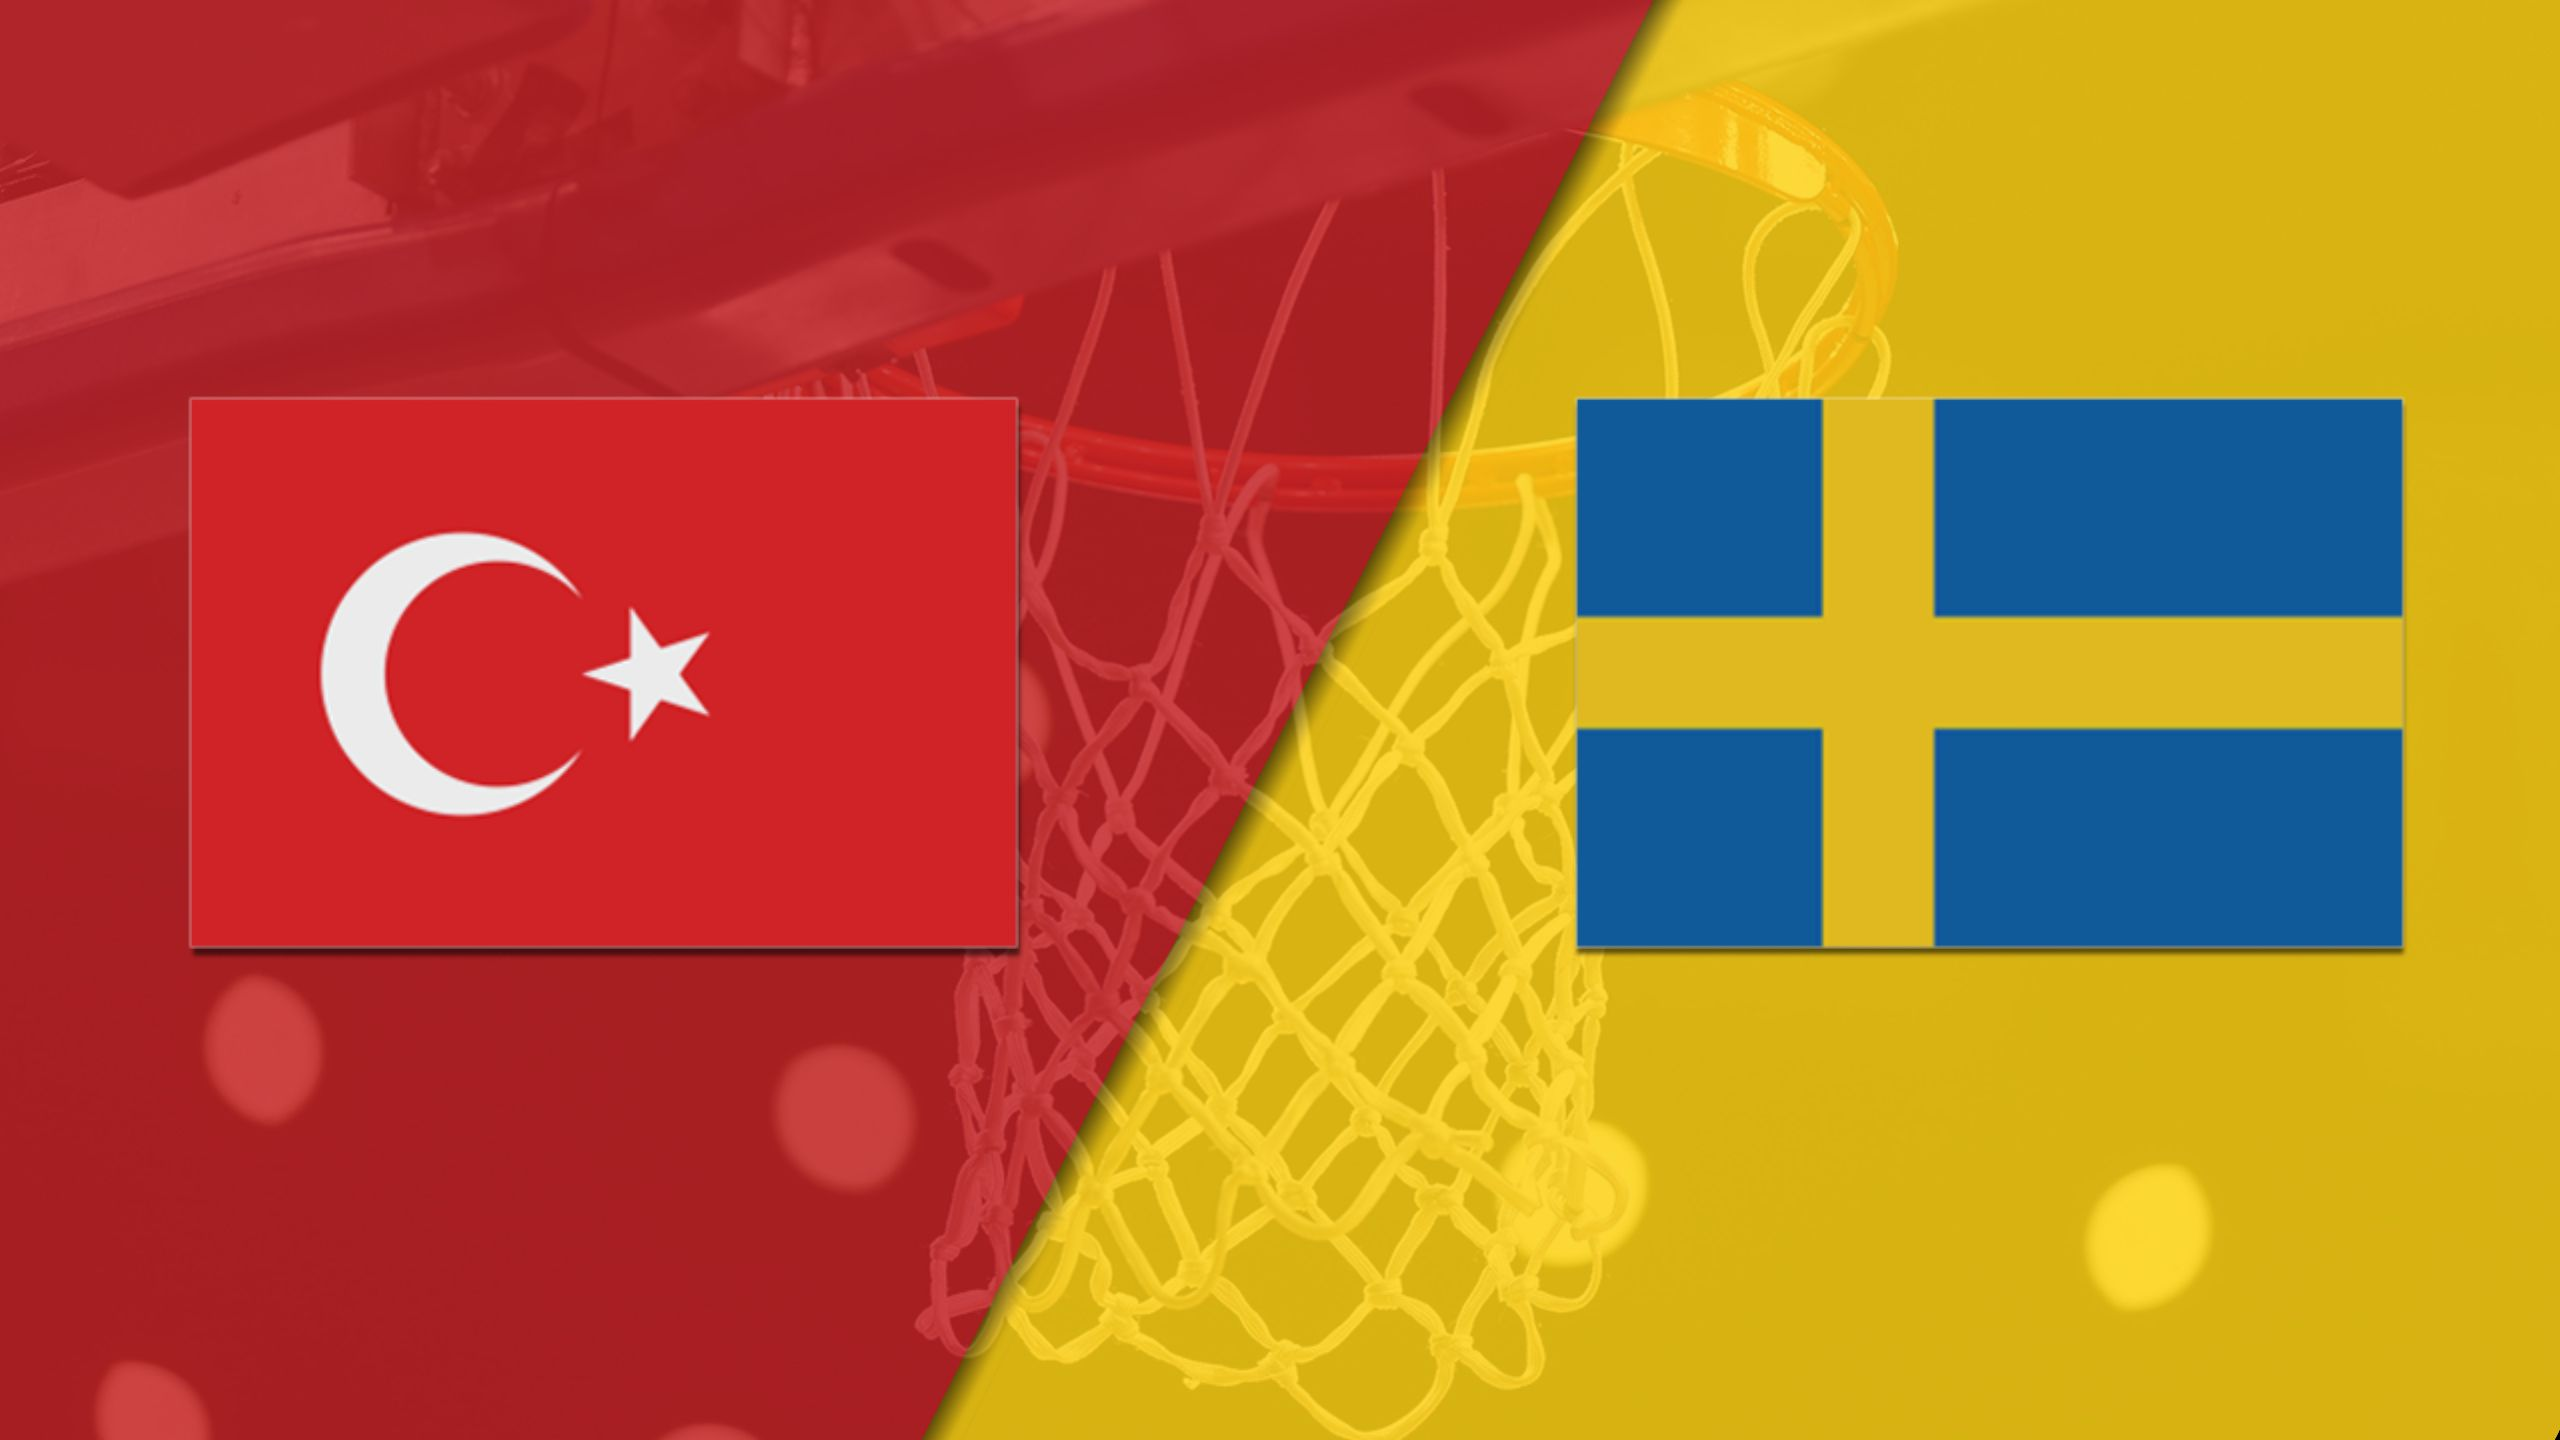 Turkey vs. Sweden (FIBA World Cup 2019 Qualifier)